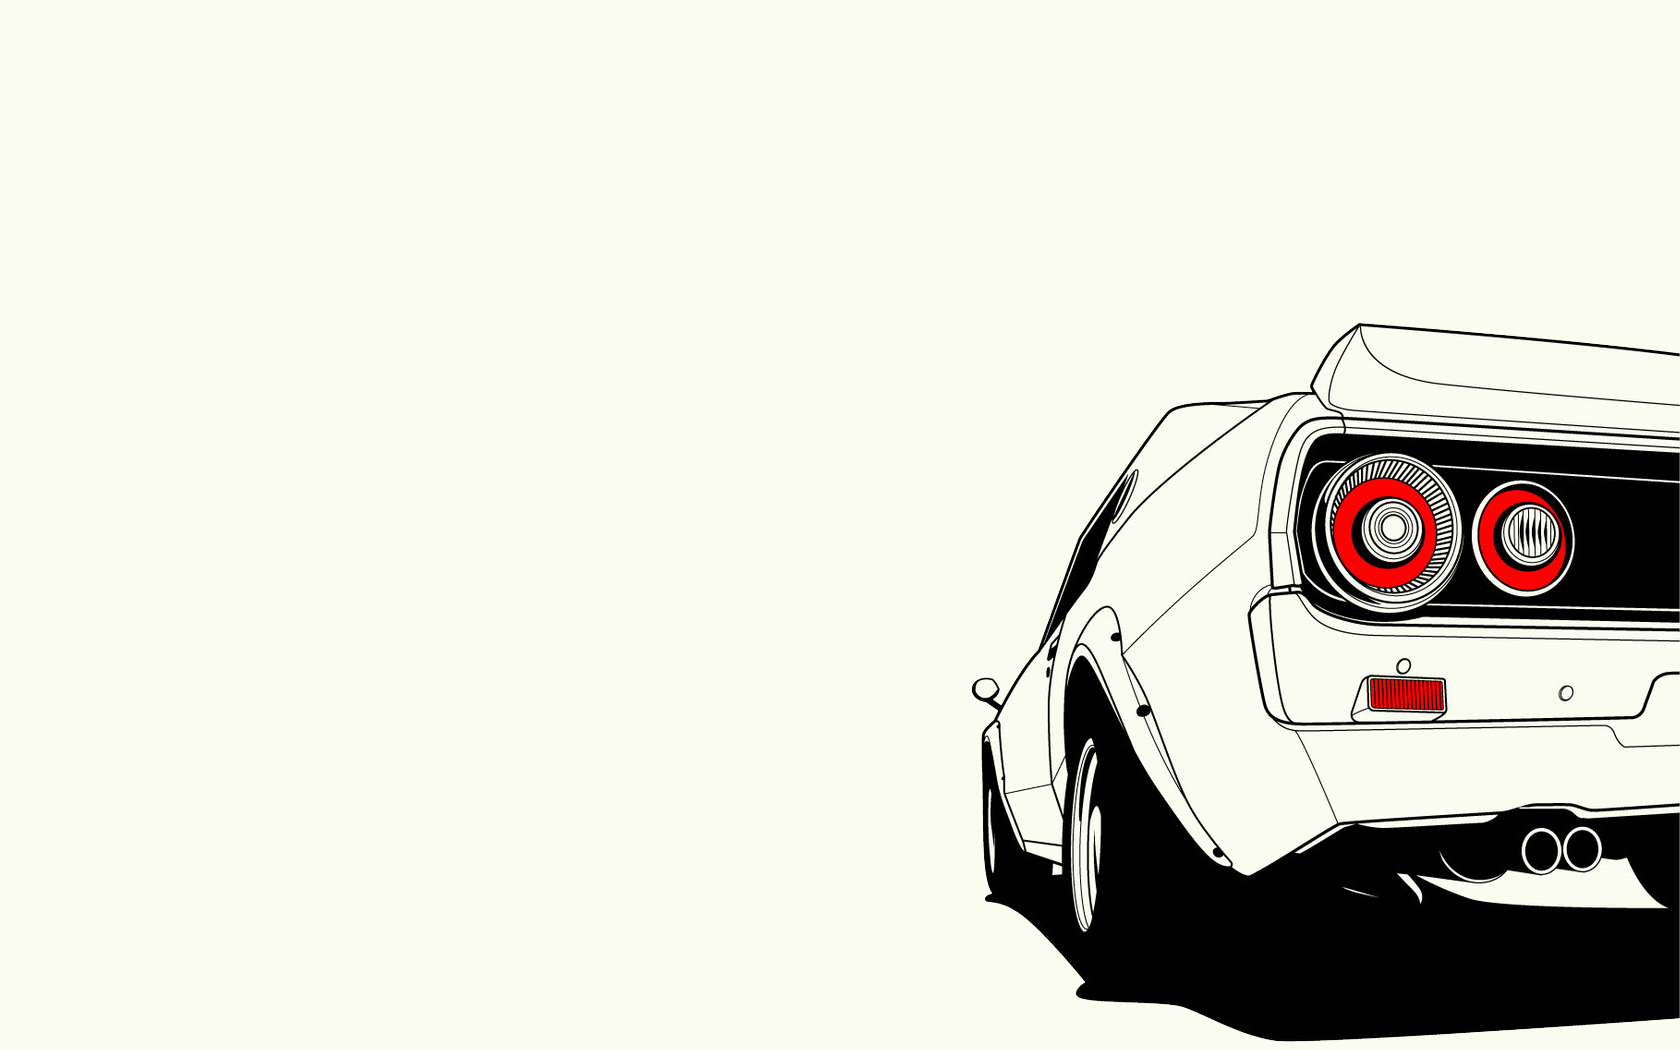 Cars Wallpaper: Simple Car Drawings Wallpapers p with 1680x1050